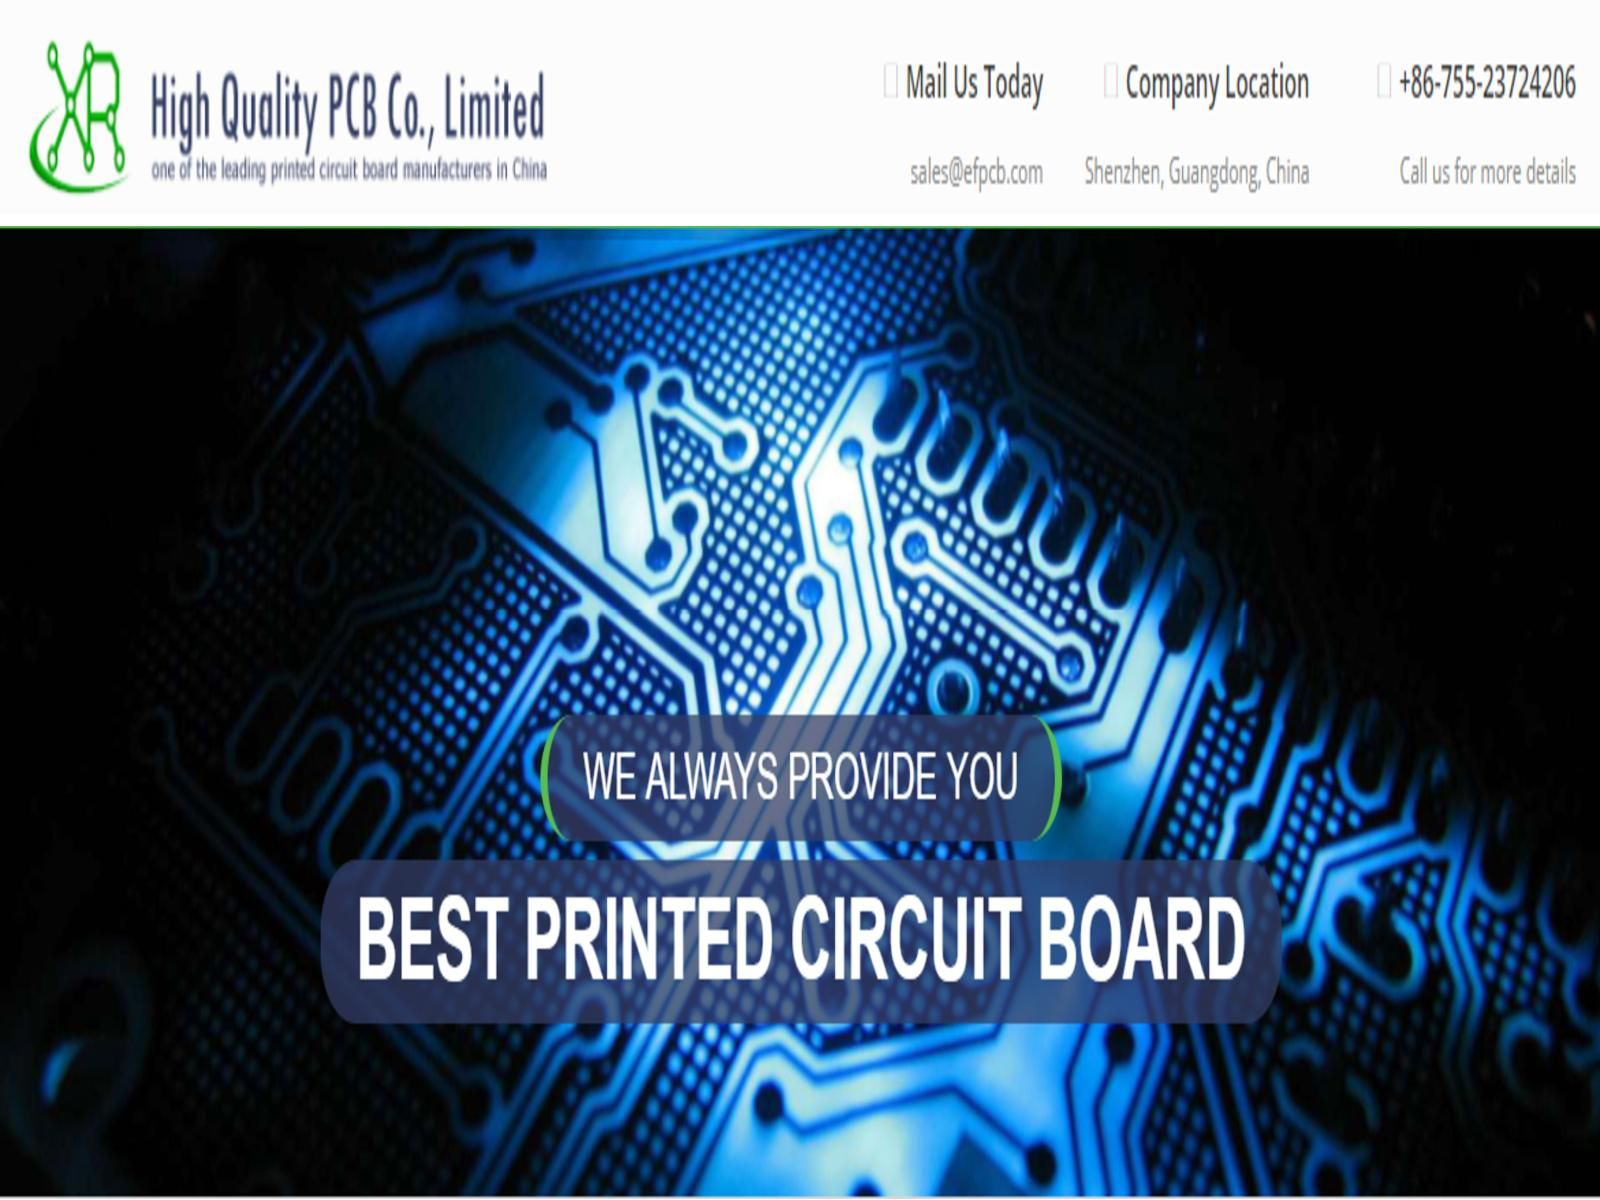 Hire The China Pcb Supplier As Per Your Need Efpcb Blog Printed Circuit Board